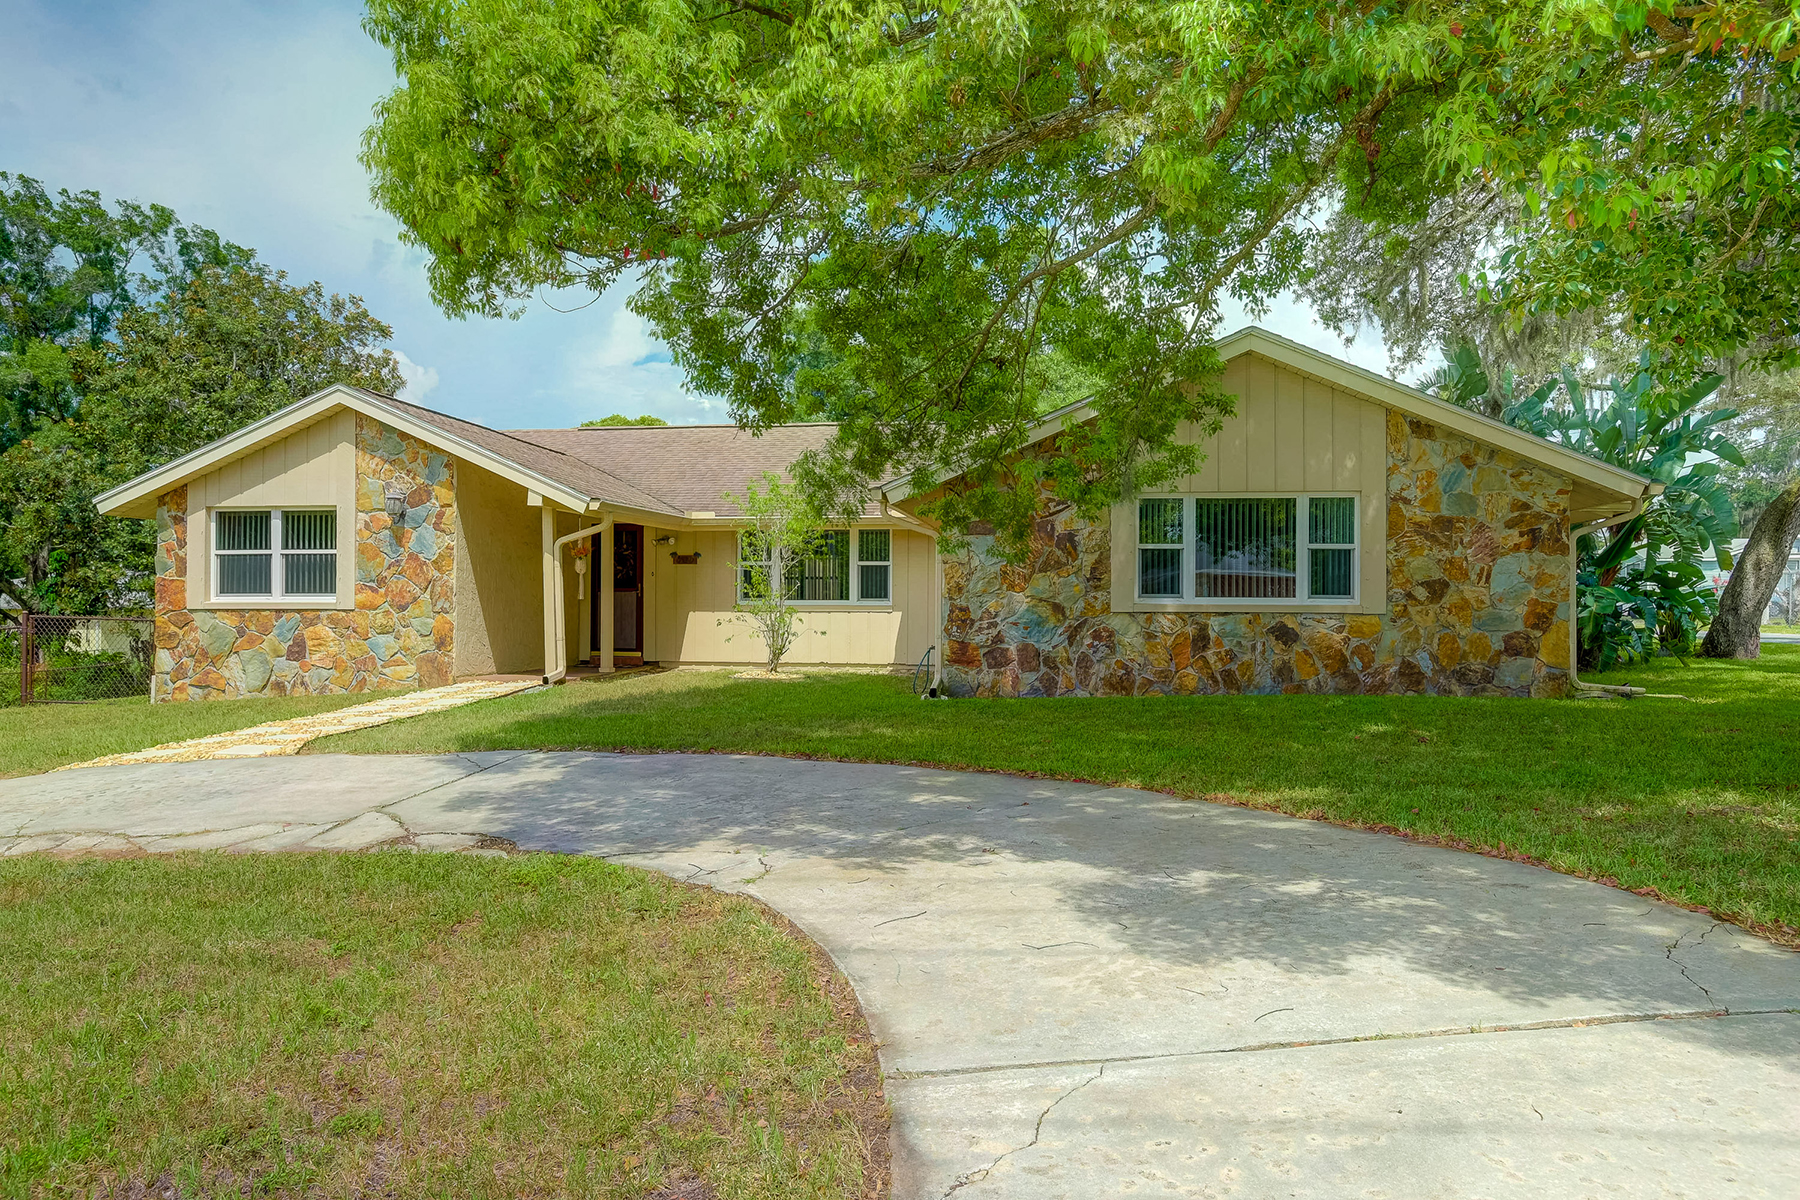 Single Family Homes for Sale at 5529 Cook St New Port Richey, Florida 34652 United States